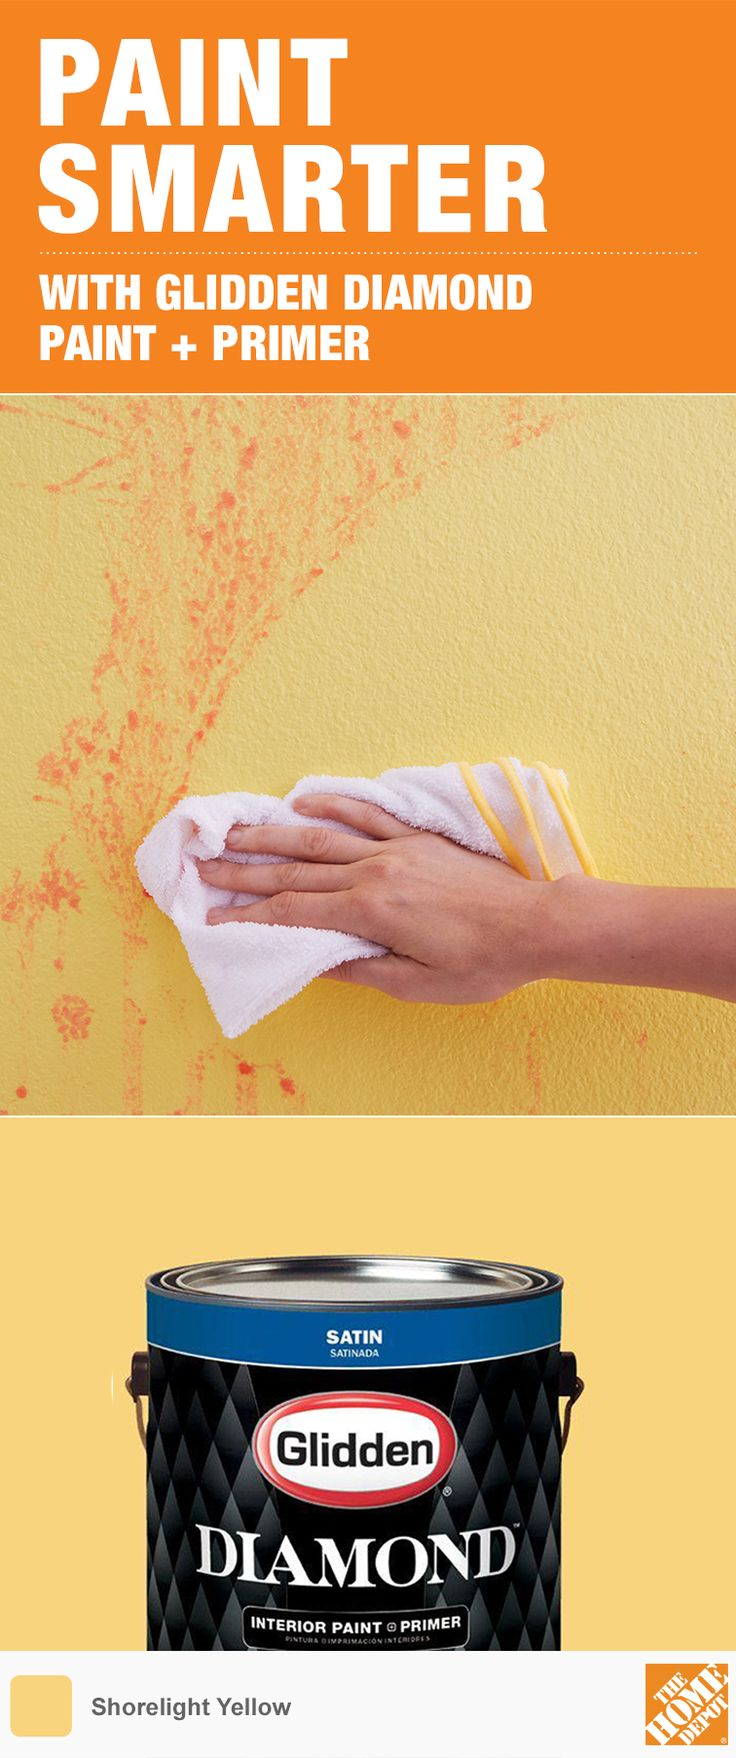 Get beautiful, stain-resistant color for half the cost of leading paint brands. Durable Glidden Diamond Paint + Primer holds up to scrubbing without damaging walls. It's a great idea for DIYing high-traffic areas like bathrooms, kids' rooms, and kitchens. Available exclusively at The Home Depot.